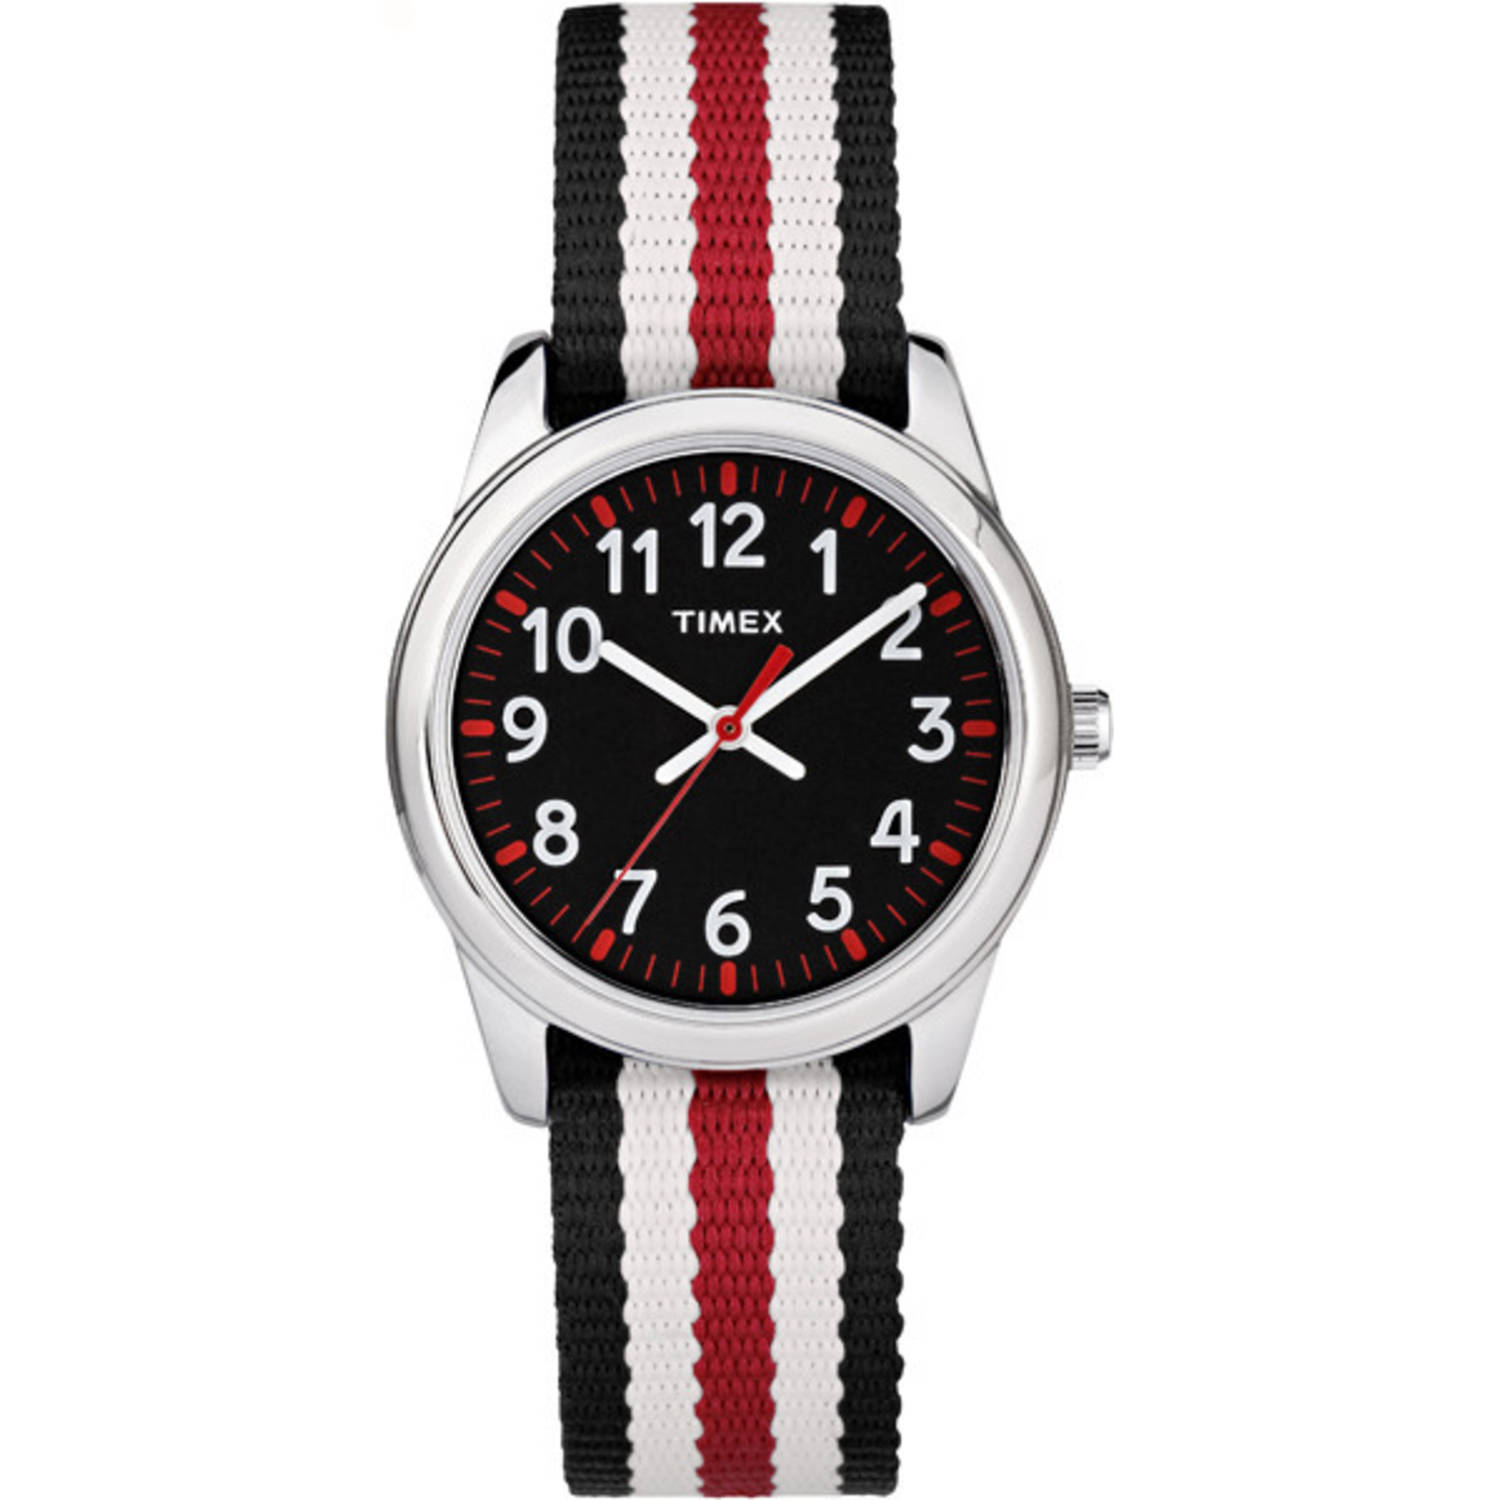 Timex Boys Time Machines Analog Metal Watch, Black/Red Stripes Nylon Strap